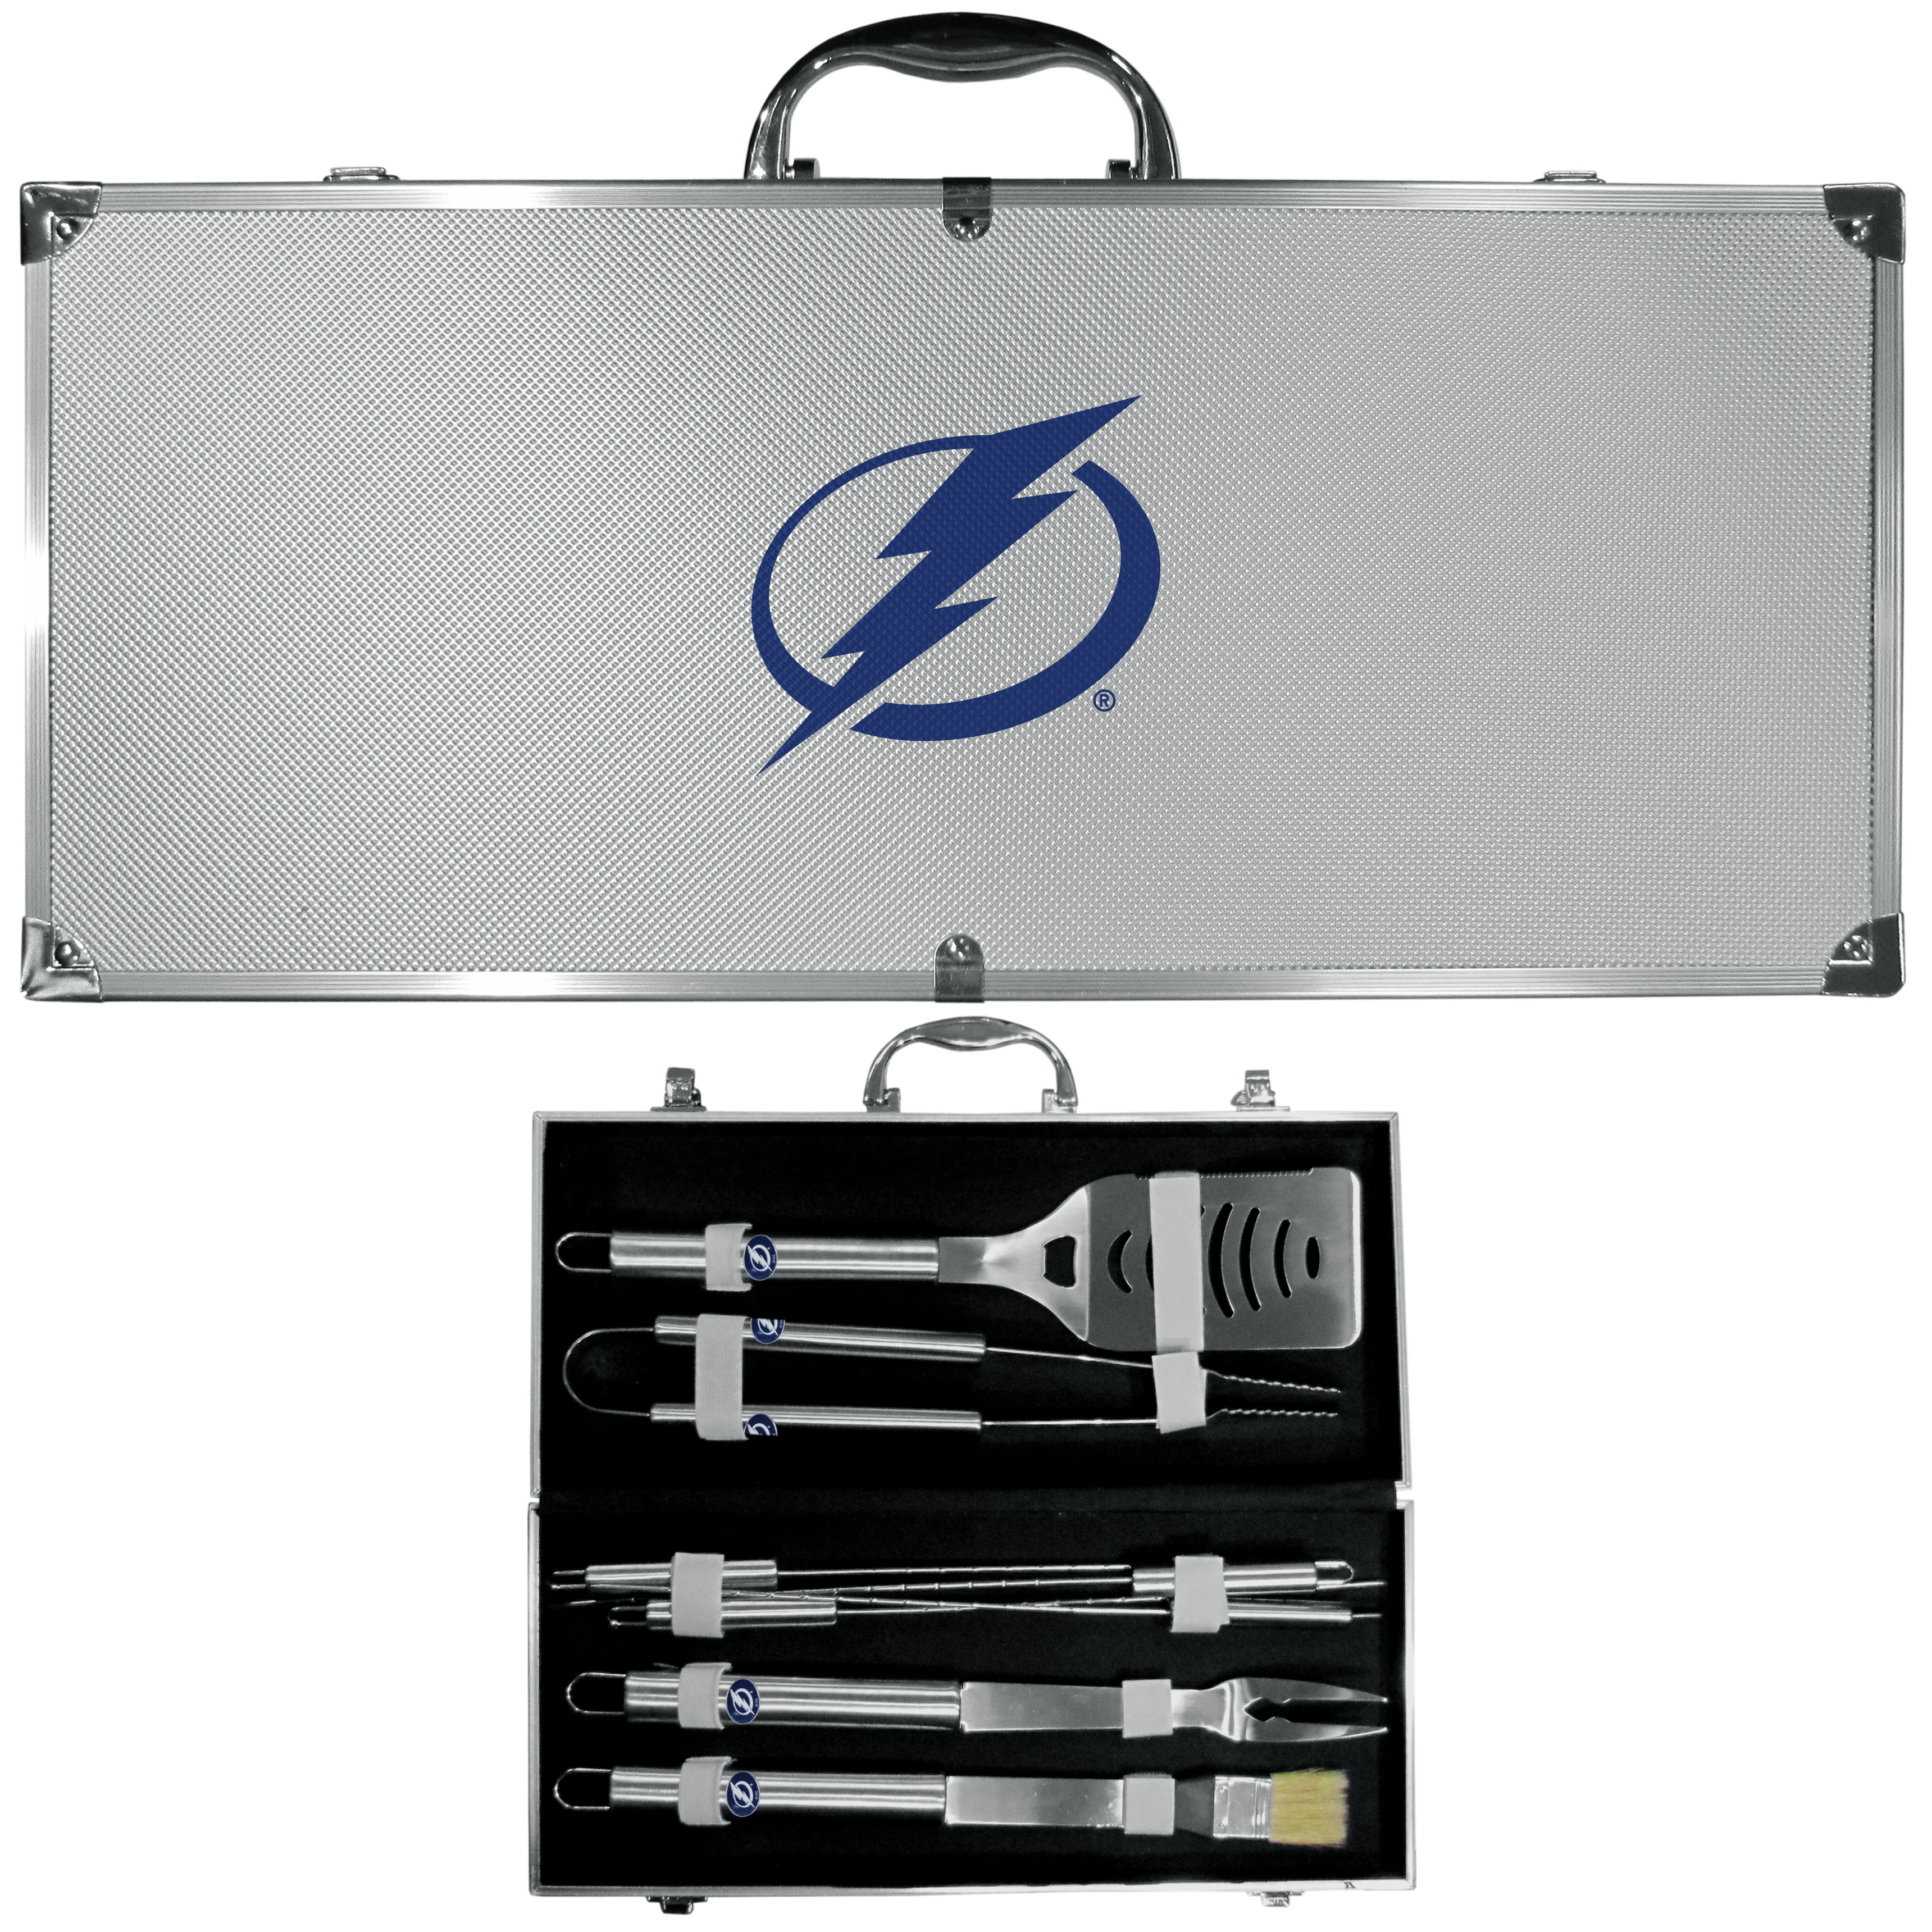 Tampa Bay Lightning® 8 pc Stainless Steel BBQ Set w/Metal Case - This is the ultimate Tampa Bay Lightning® tailgate accessory! The high quality, 420 grade stainless steel tools are durable and well-made enough to make even the pickiest grill master smile. This complete grill accessory kit includes; 4 skewers, spatula with bottle opener and serrated knife edge, basting brush, tongs and a fork. The 18 inch metal carrying case makes this a great outdoor kit making grilling an ease while camping, tailgating or while having a game day party on your patio. The tools are 17 inches long and feature a metal team emblem. The metal case features a large, metal team emblem with exceptional detail. This high-end men's gift is sure to be a hit as a present on Father's Day or Christmas.